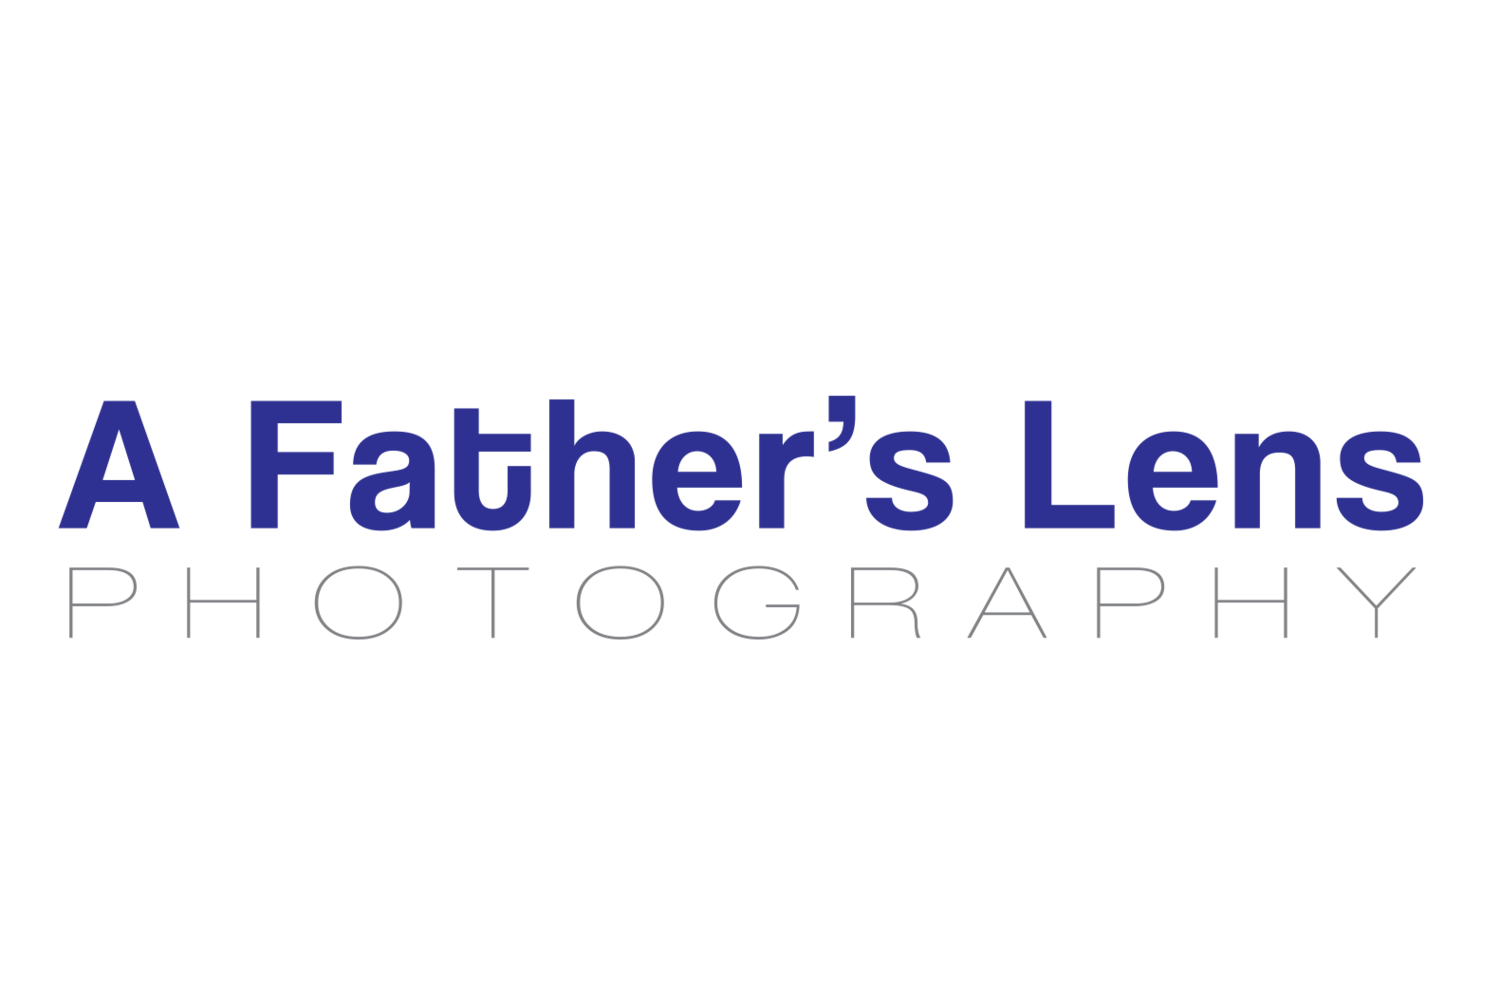 A Father's Lens Photography